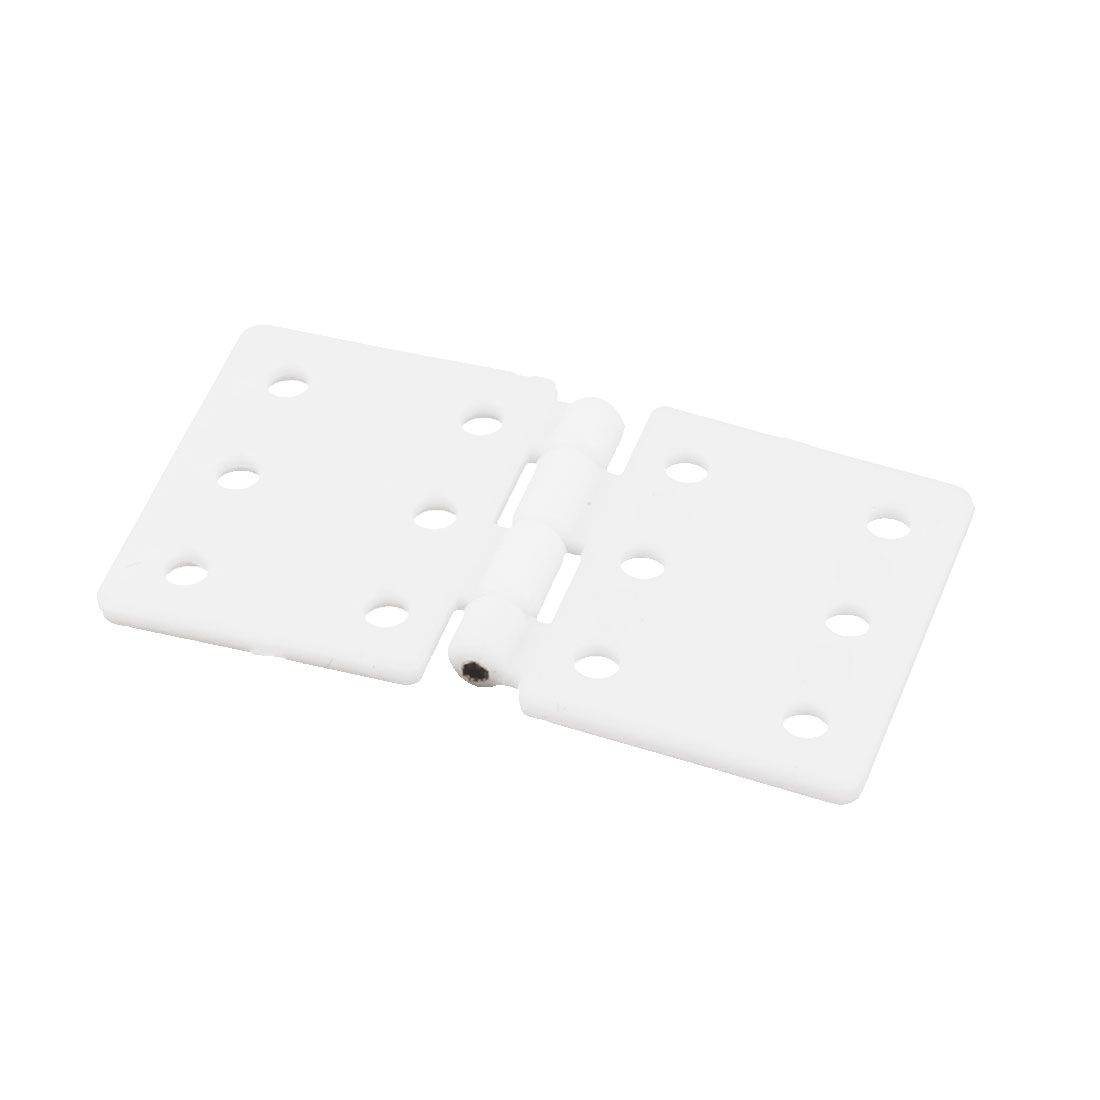 Spare Parts 6 Mount Hole Foldable White Nylon Pinned Hinge 28 x 16mm